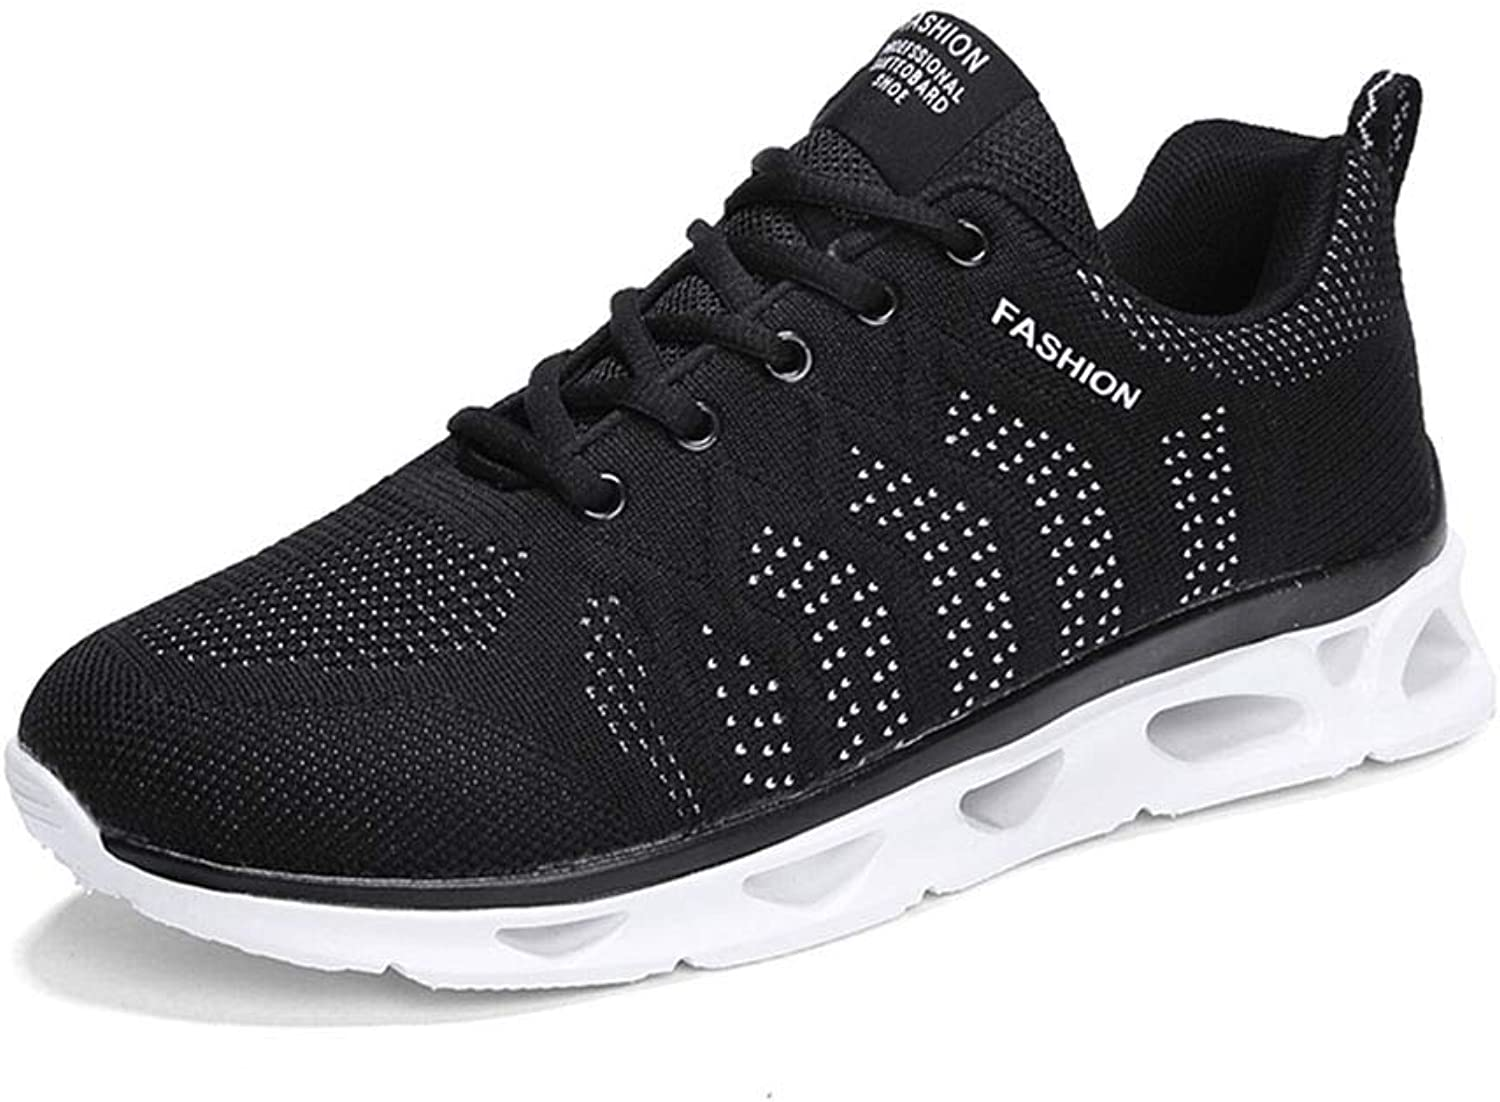 COSDN Womens Mens Fashion Freely Breathable Flyknit shoes Running Lightweight Youth Sneakers